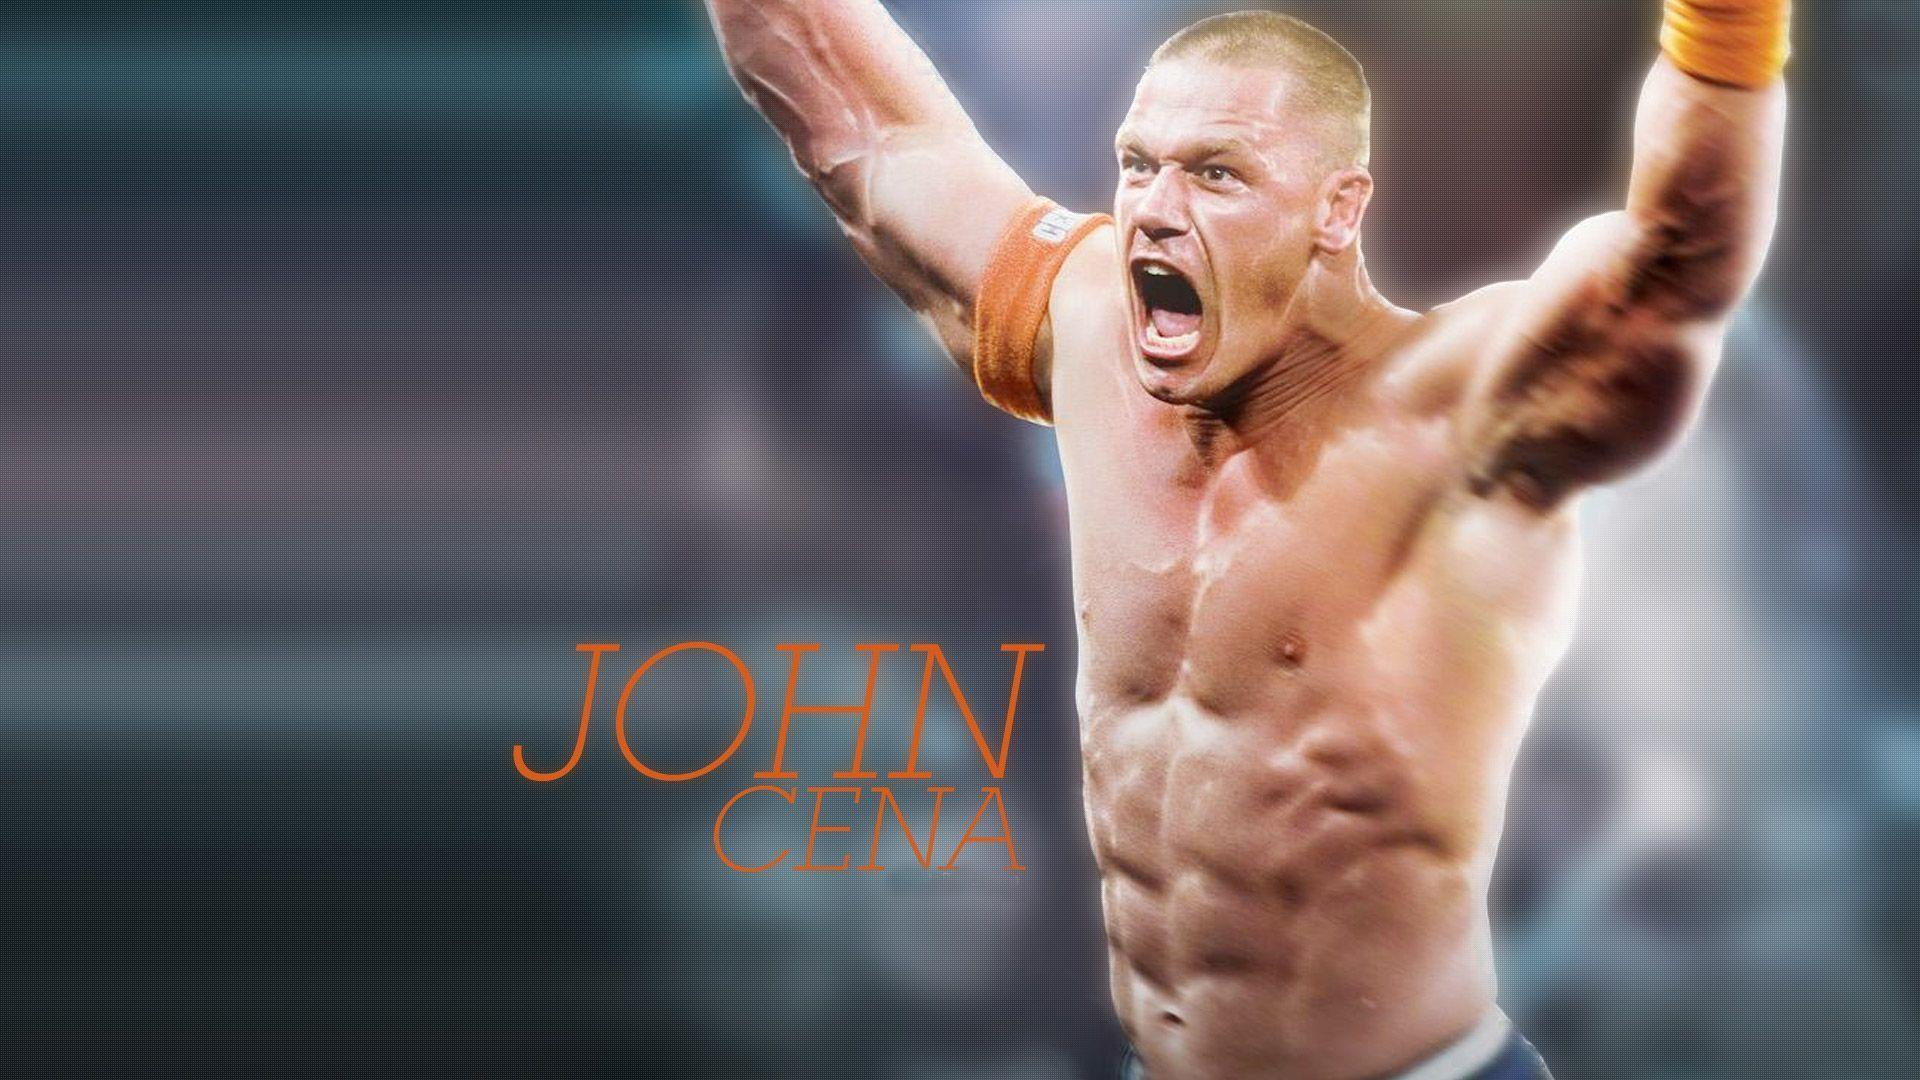 John Cena Widescreen Image 01 | hdwallpapers-